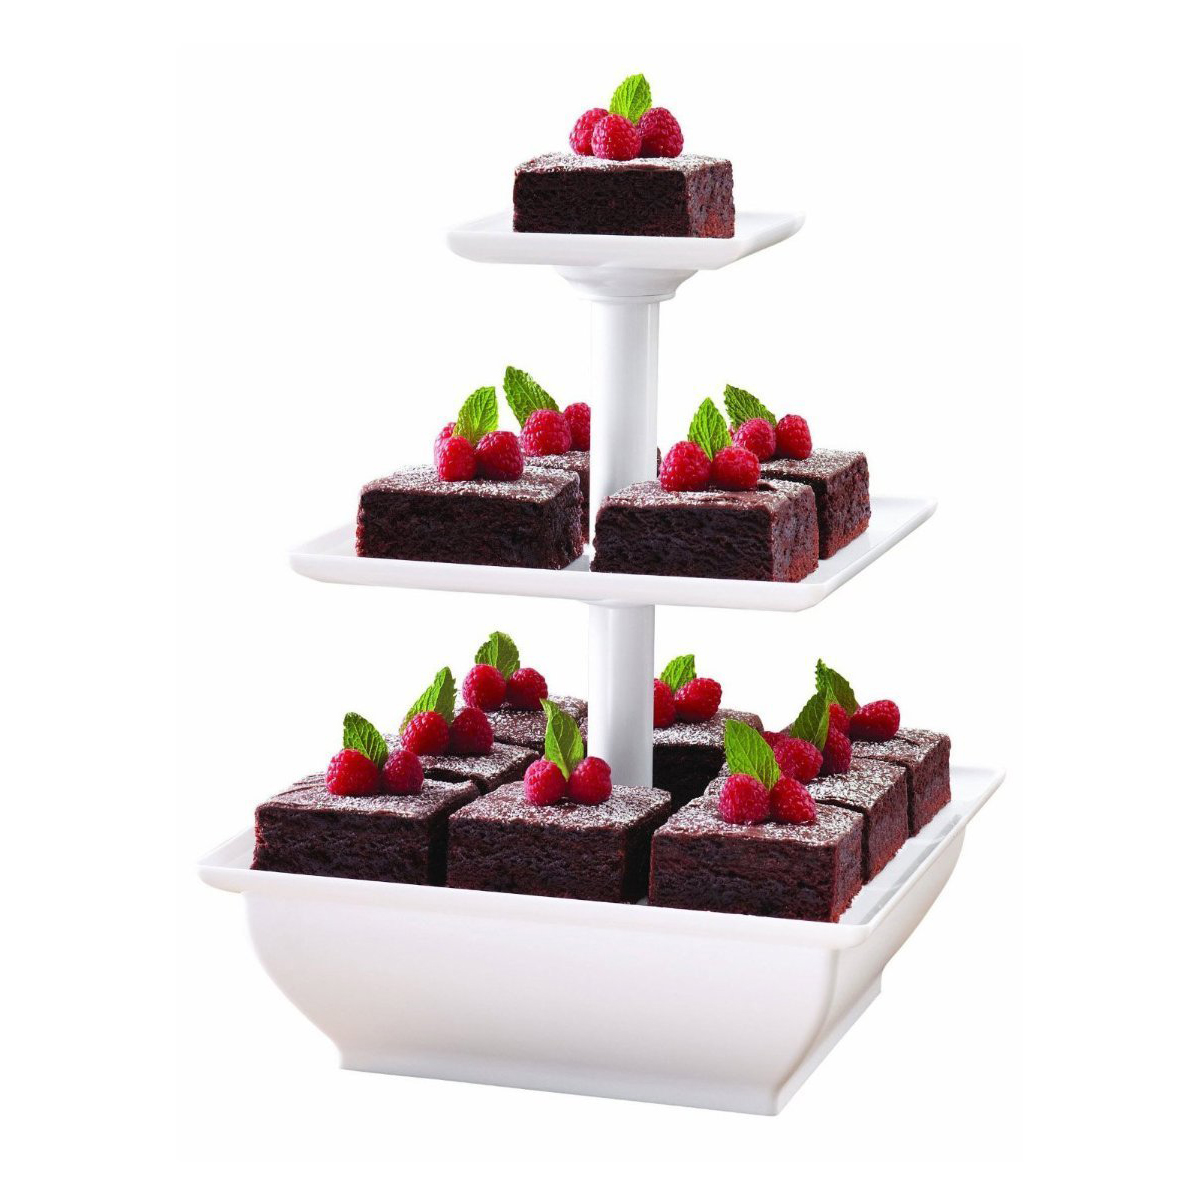 3 tier serving tray dessert cupcake stand party platter server